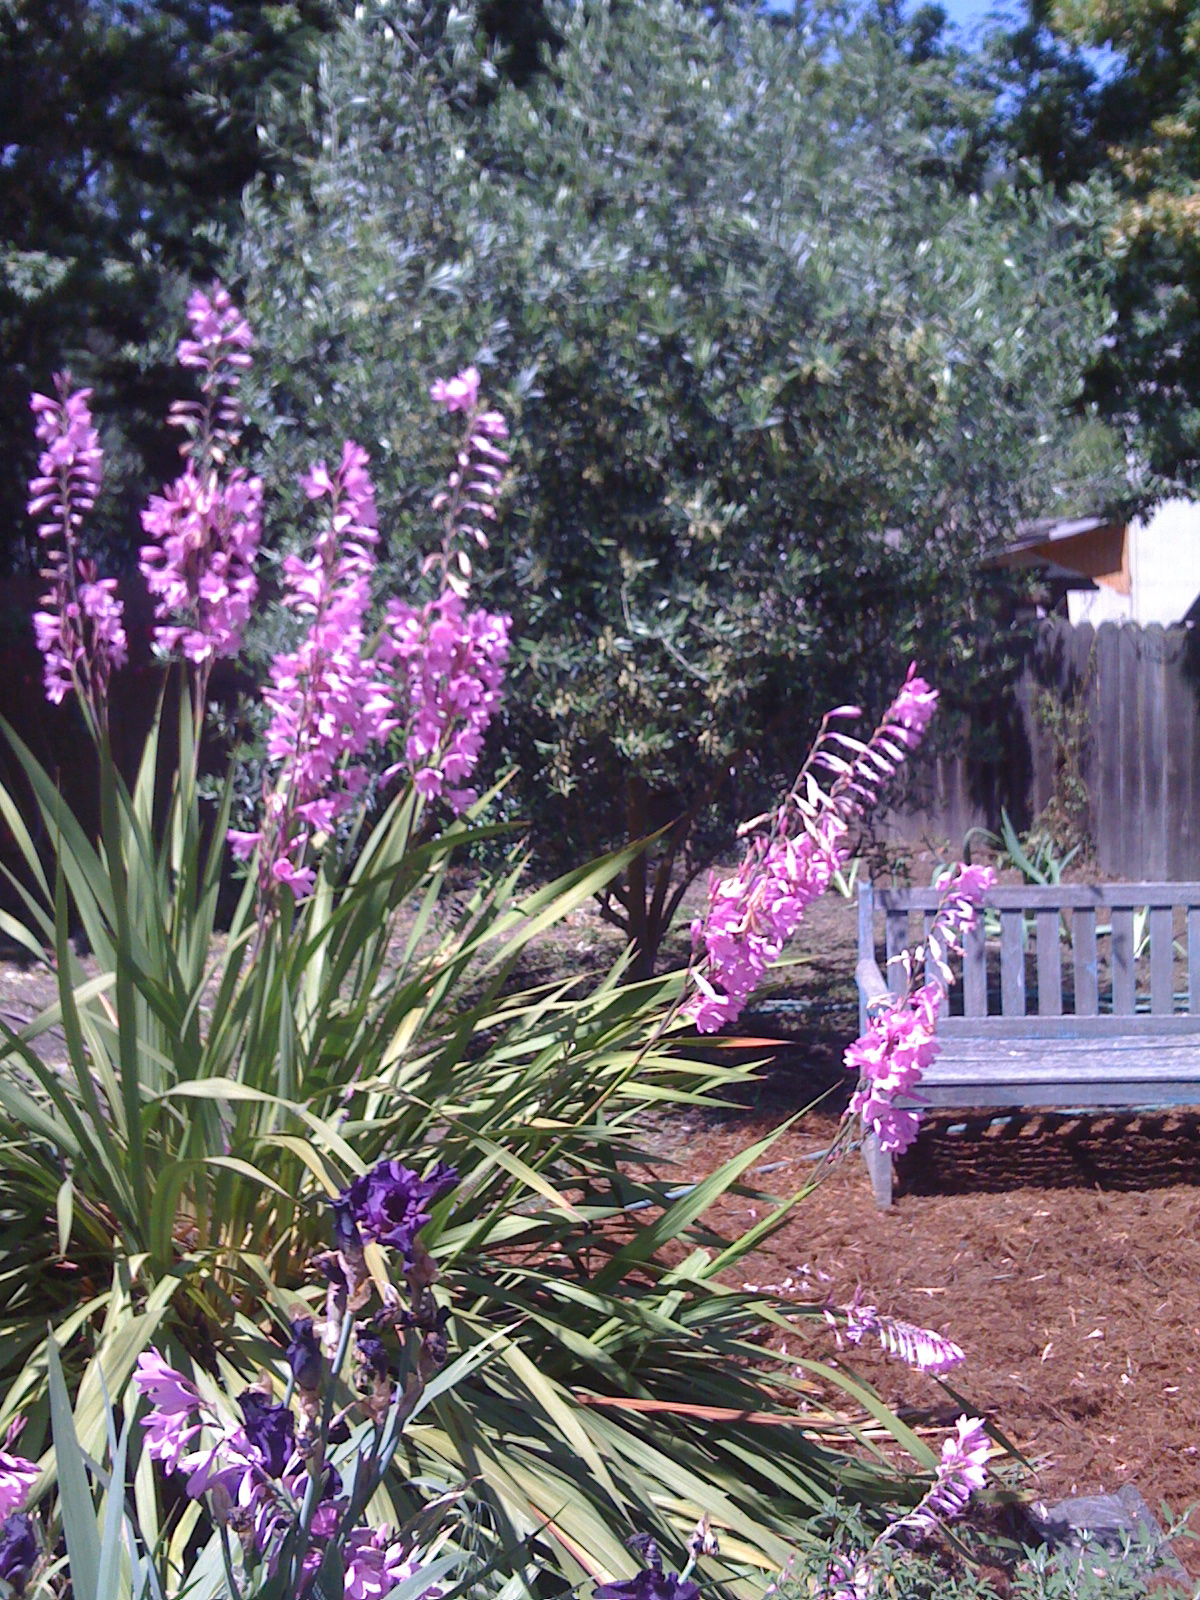 Gladiolas bloom in front of a garden bench and Olive tree.